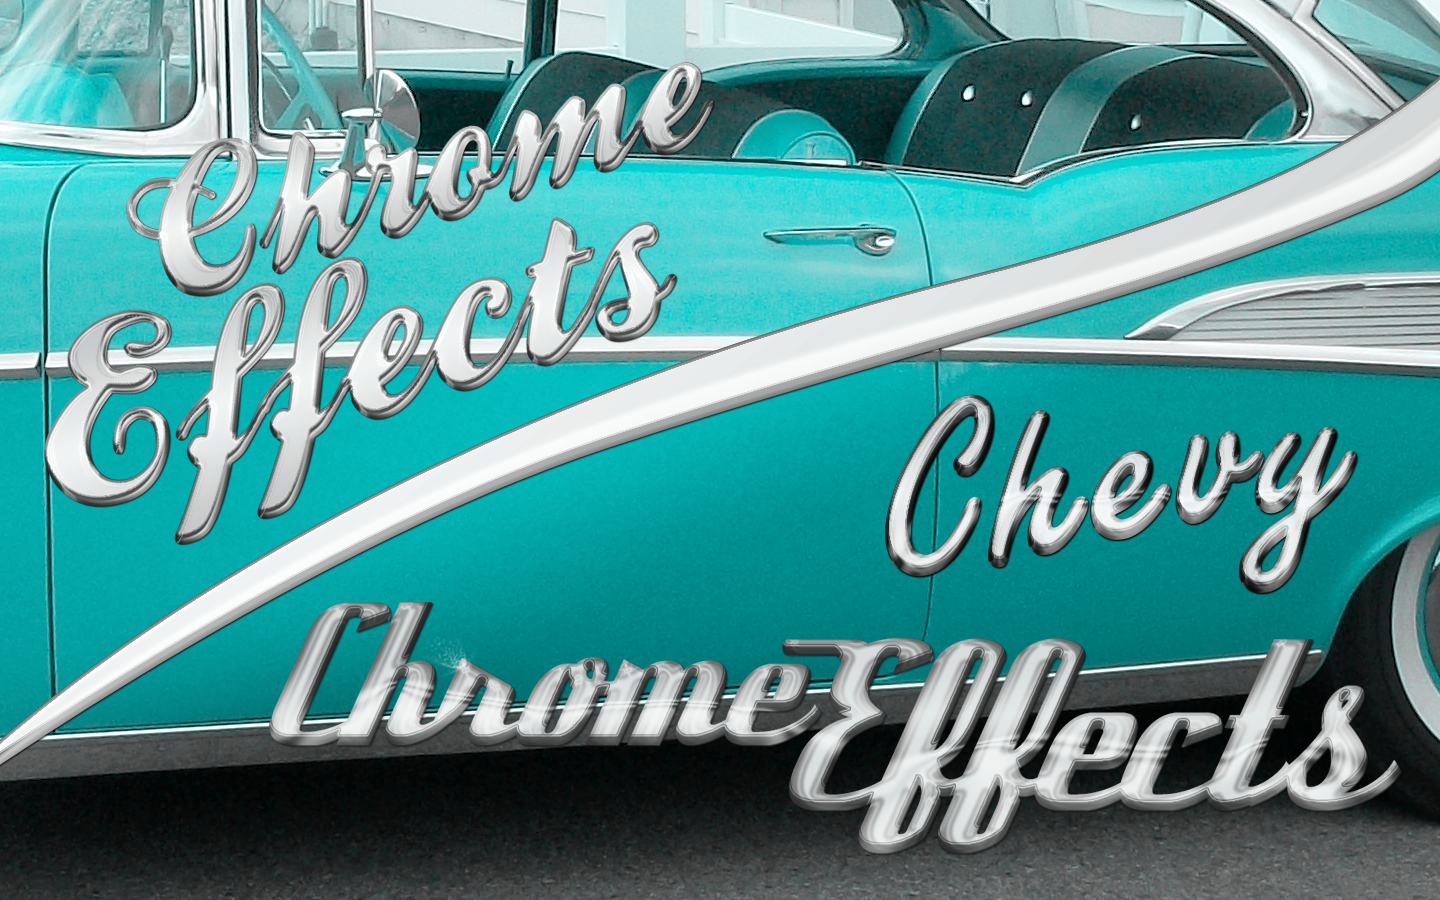 Chrome Effect PSD and ASL by xxdigipxx